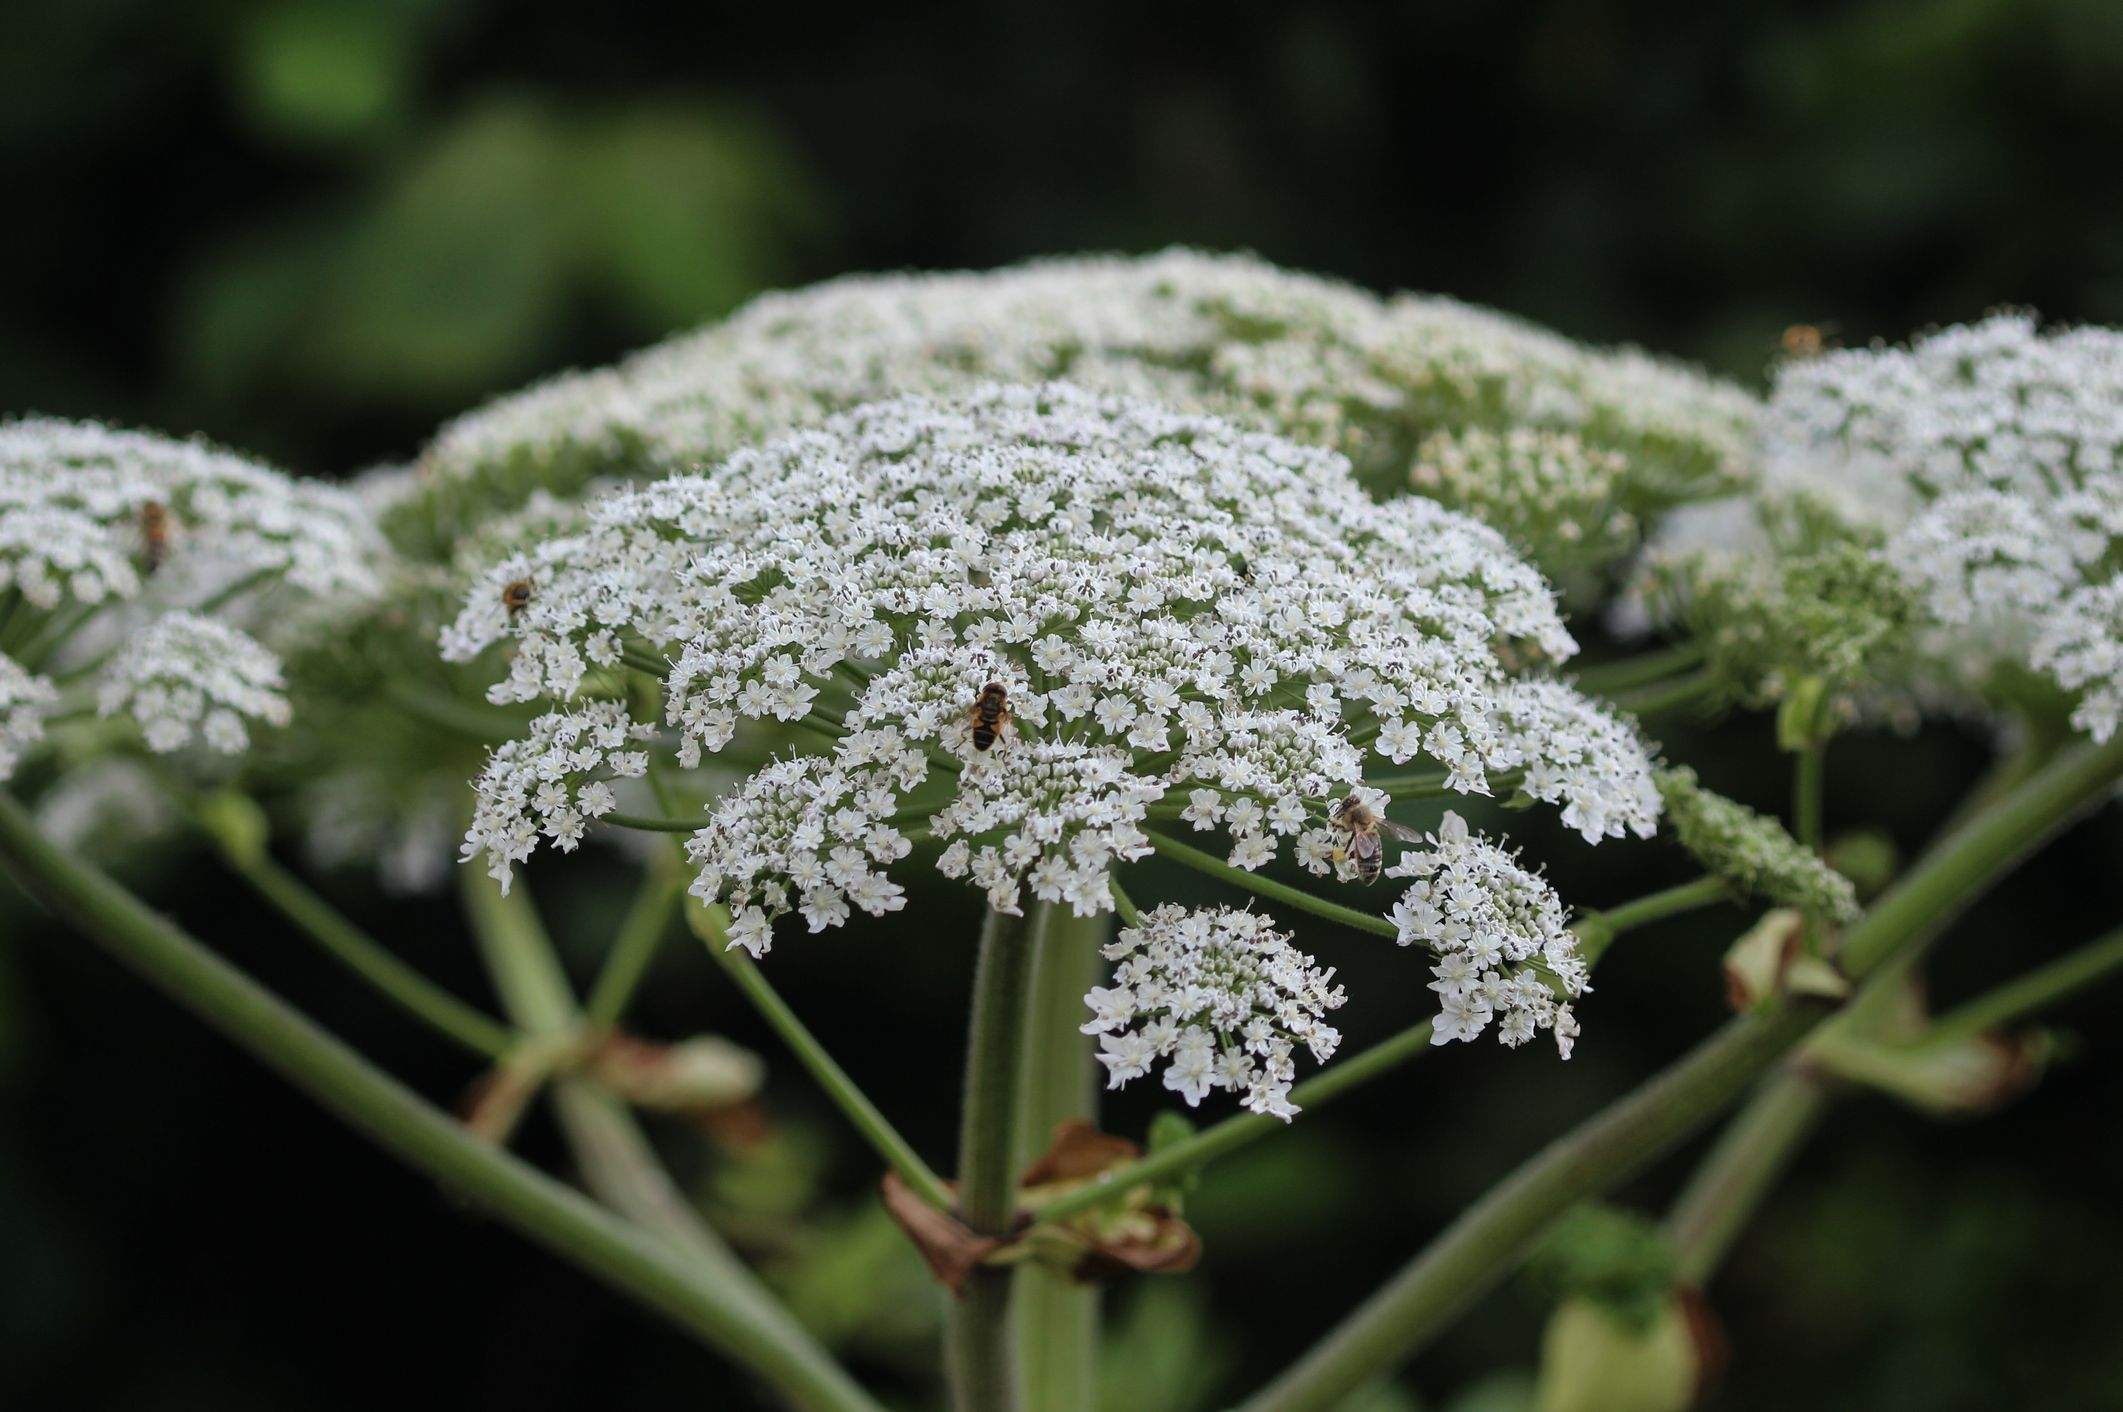 Heracleum sphondylium, commonly known as hogweed, common hogweed or cow parsnip